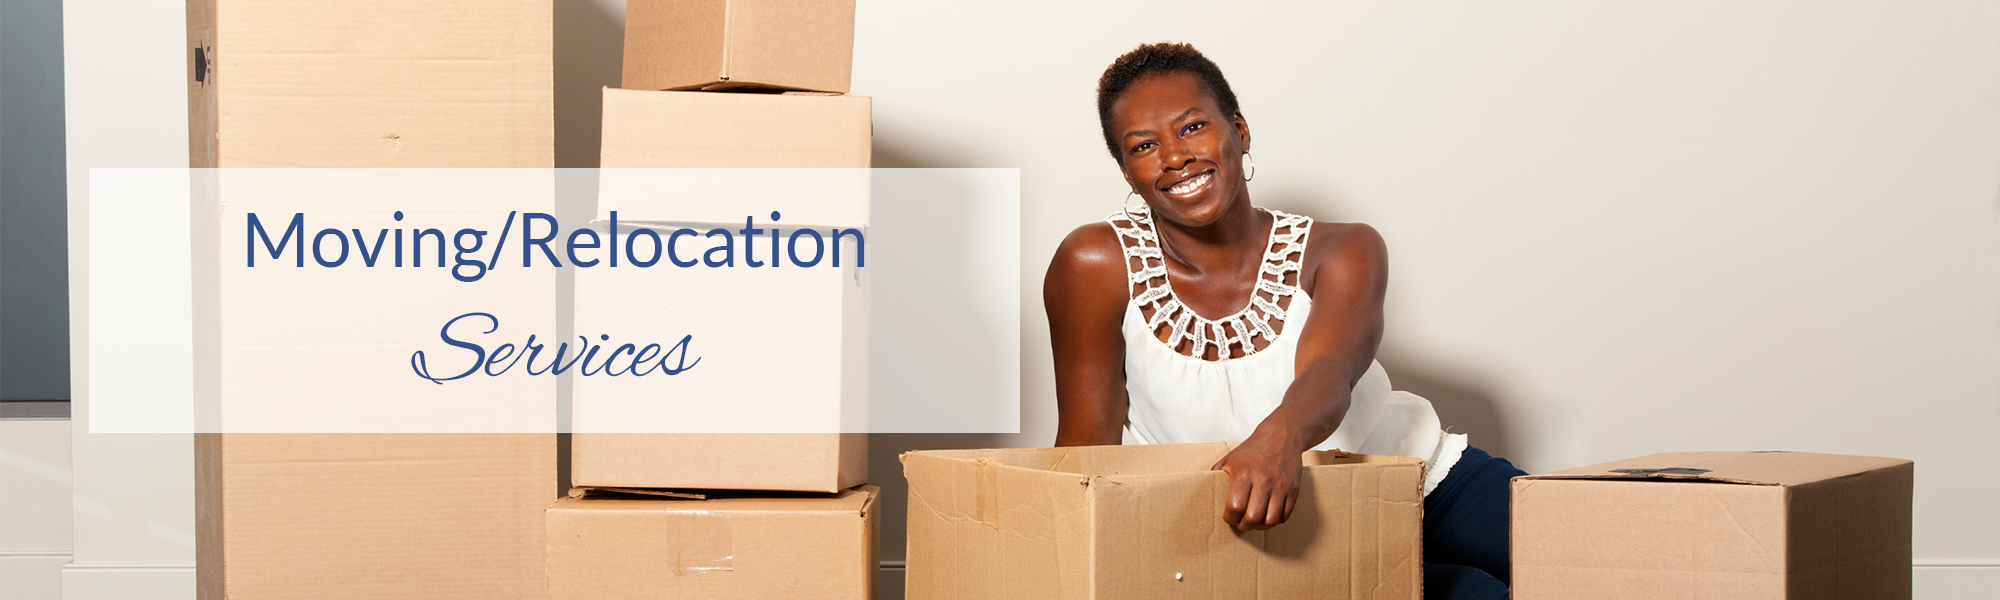 moving-relocation-services